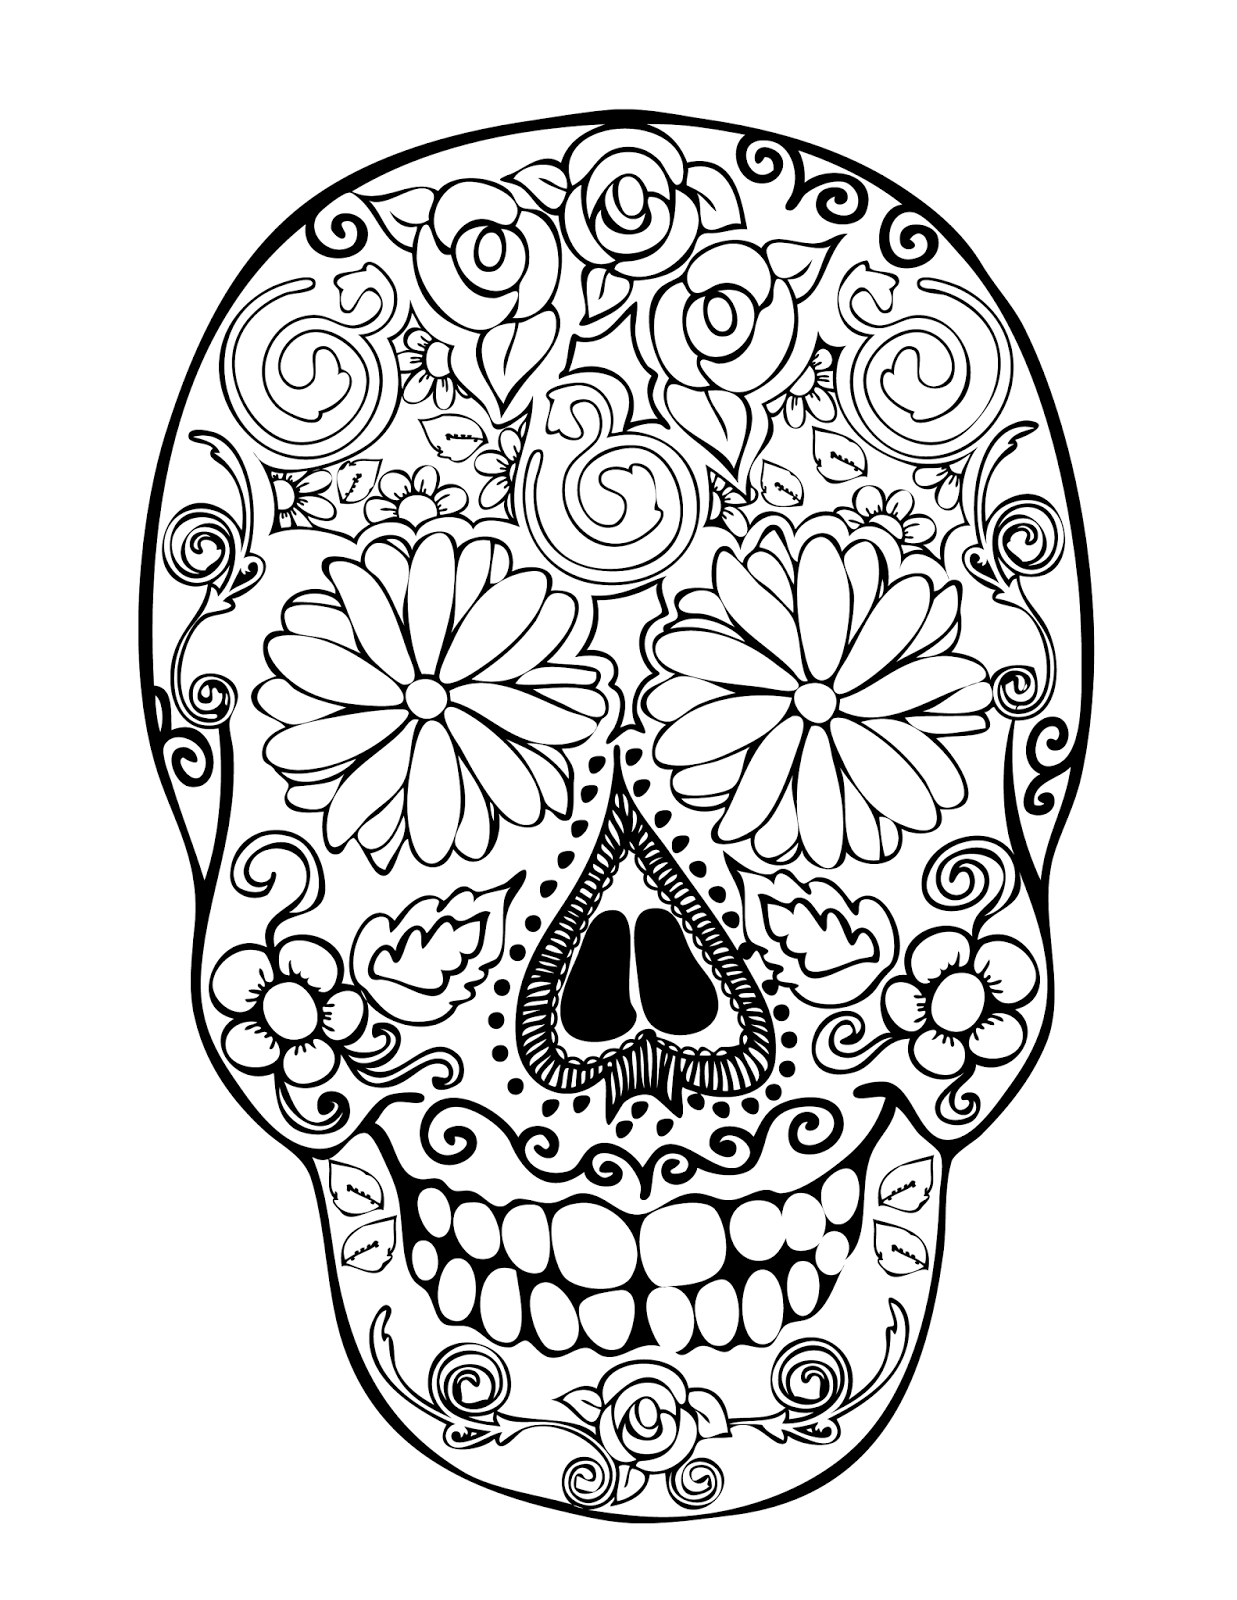 Sugar Skull Coloring Pages | Printable Coloring Pages ...